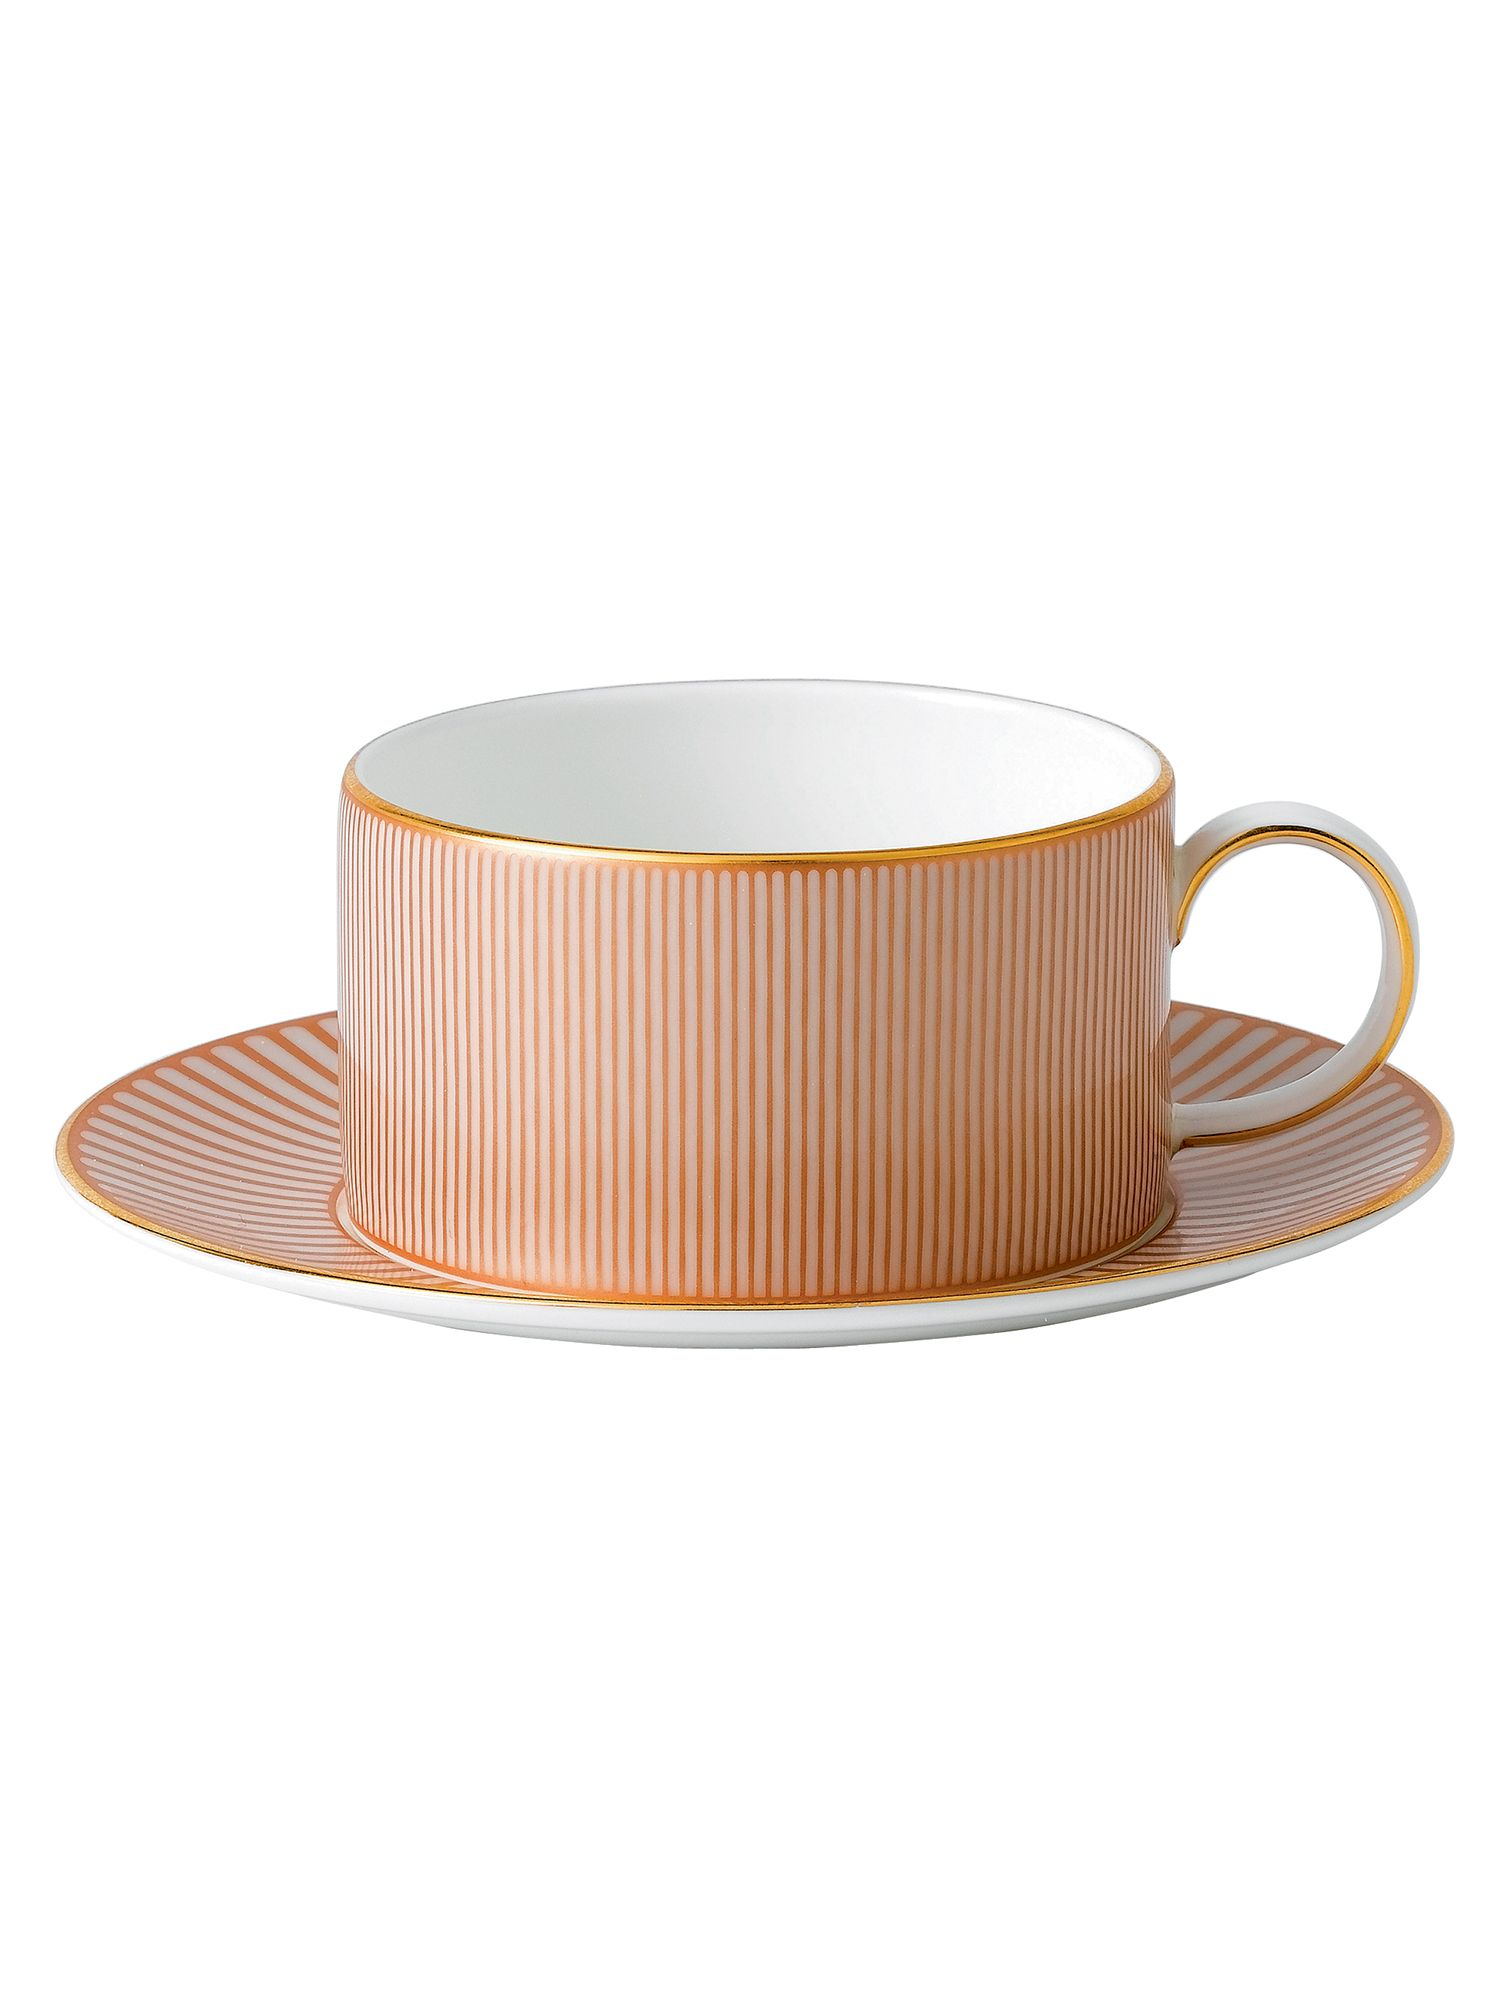 Palladian fine china tea cup and saucer 2 piece s